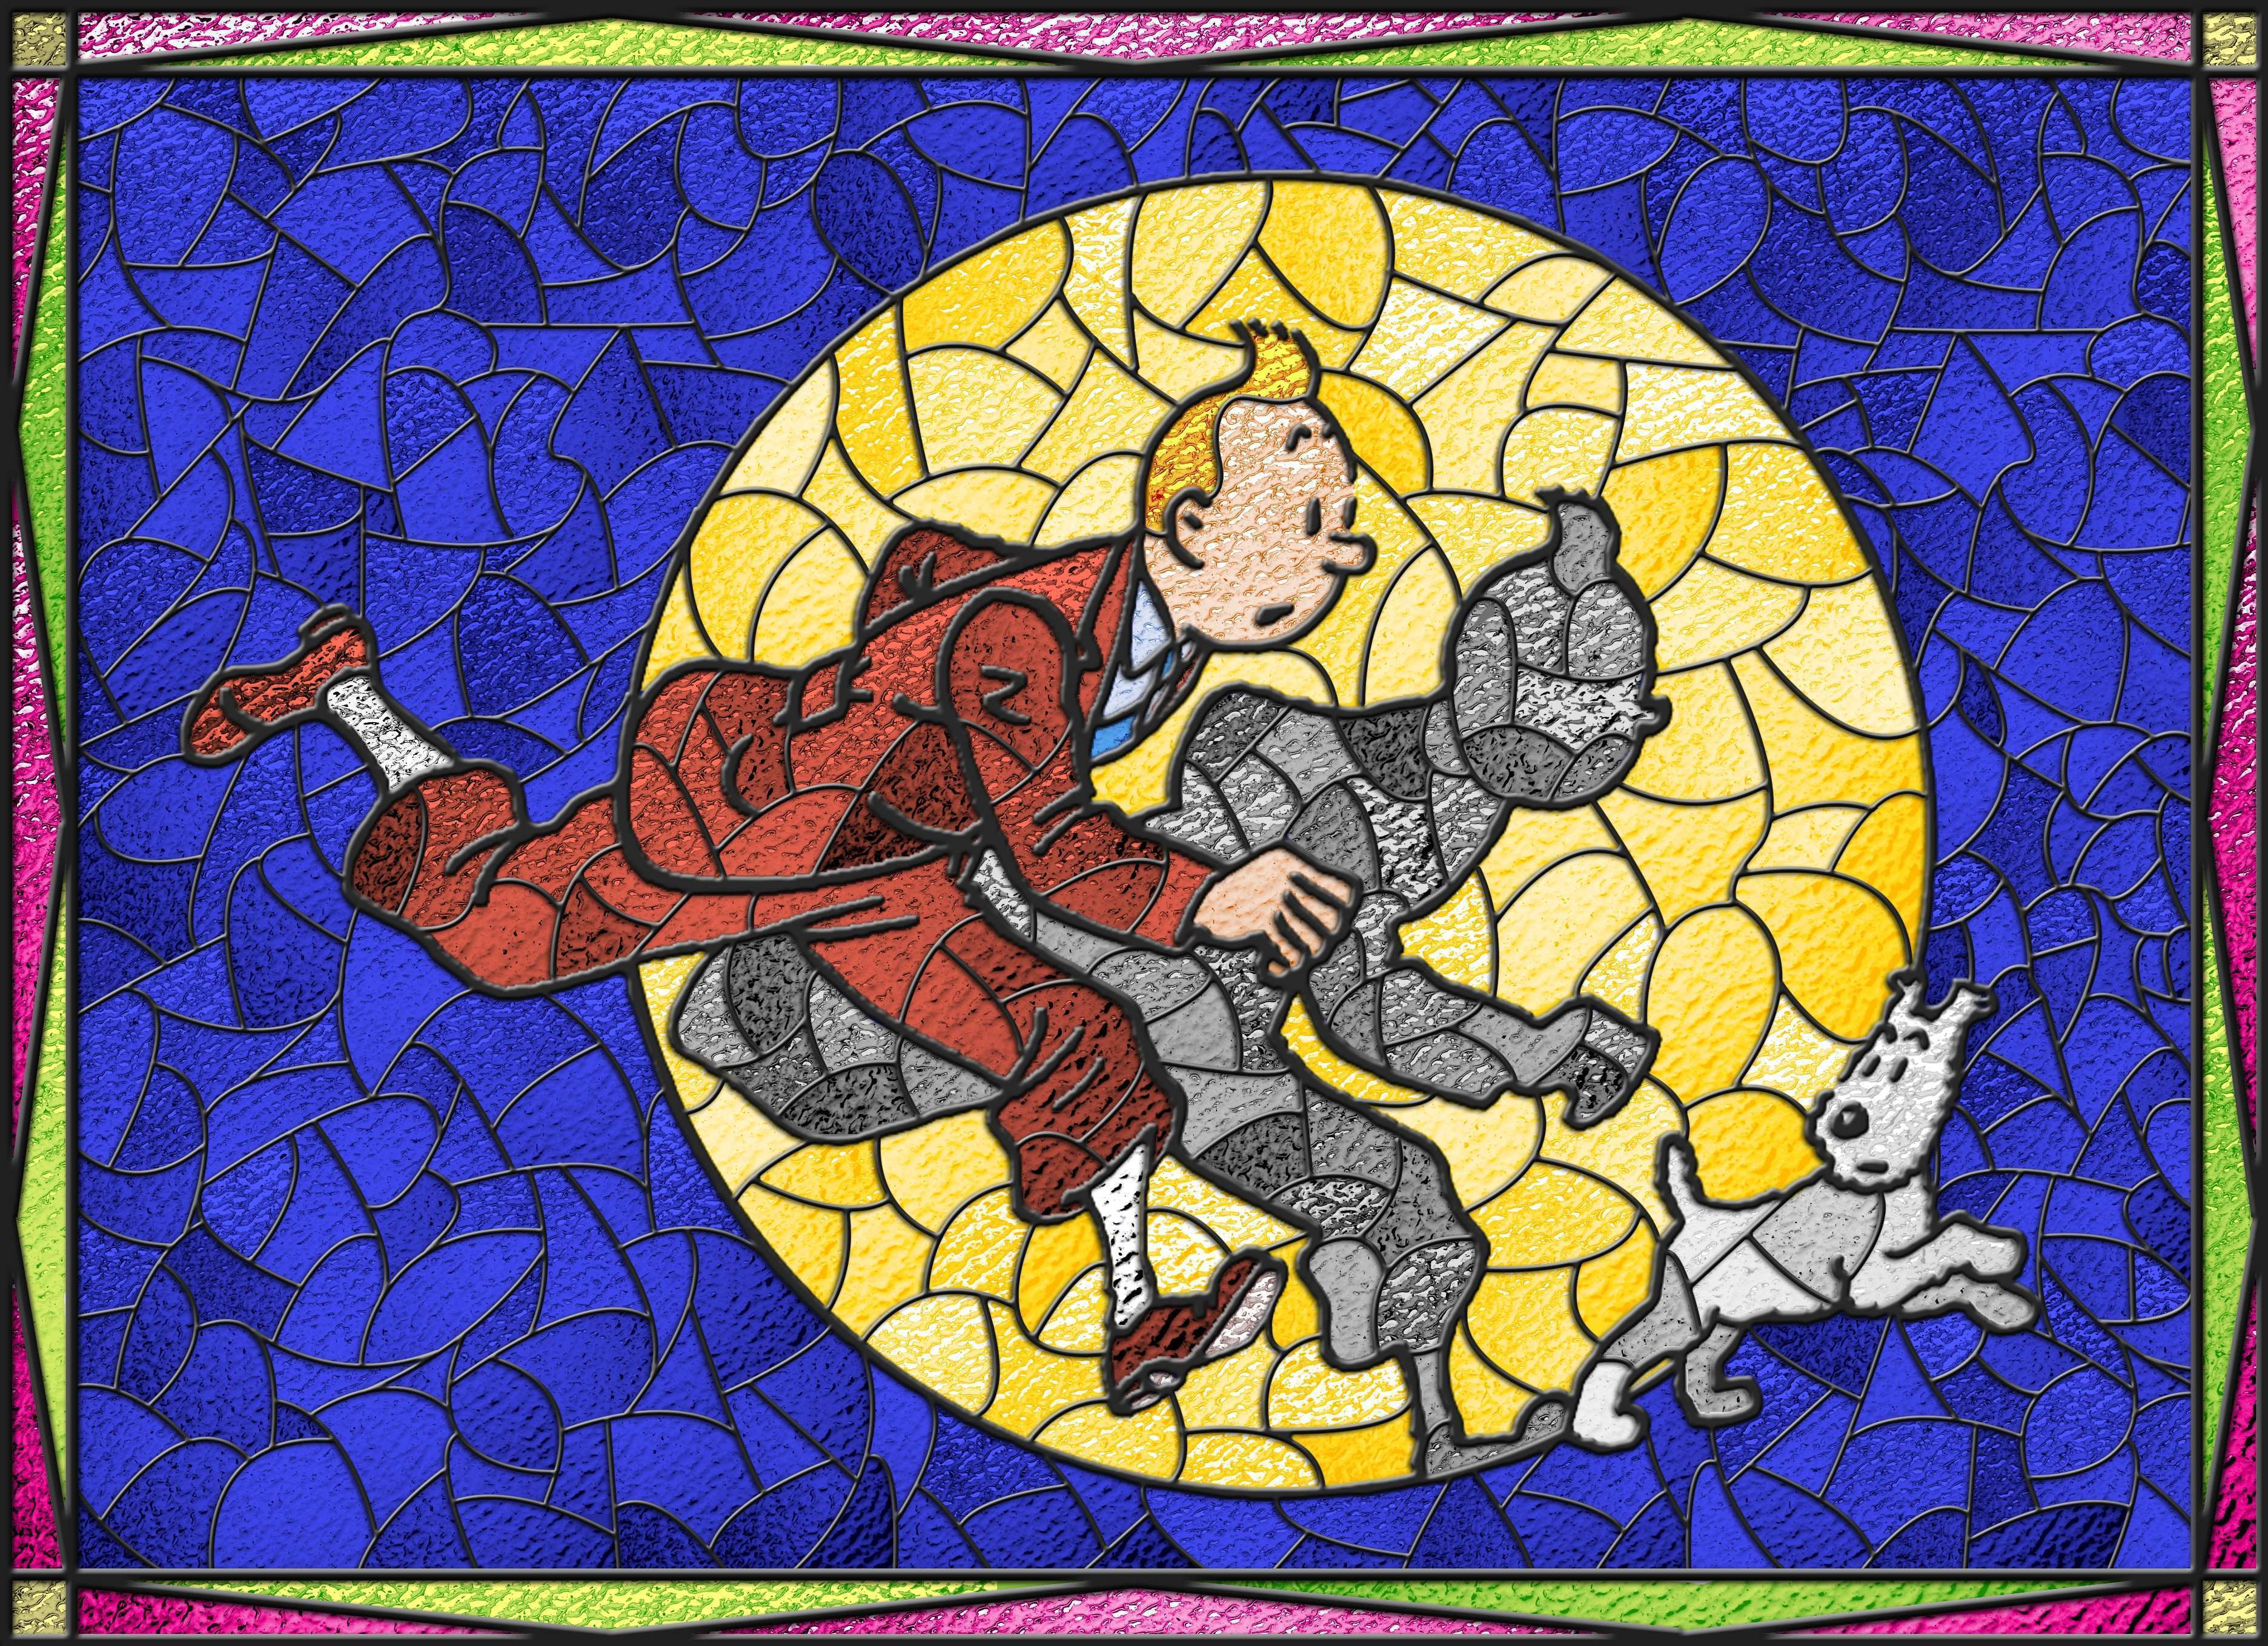 Tintin Snowy Stained Glass by Suedetess on DeviantArt